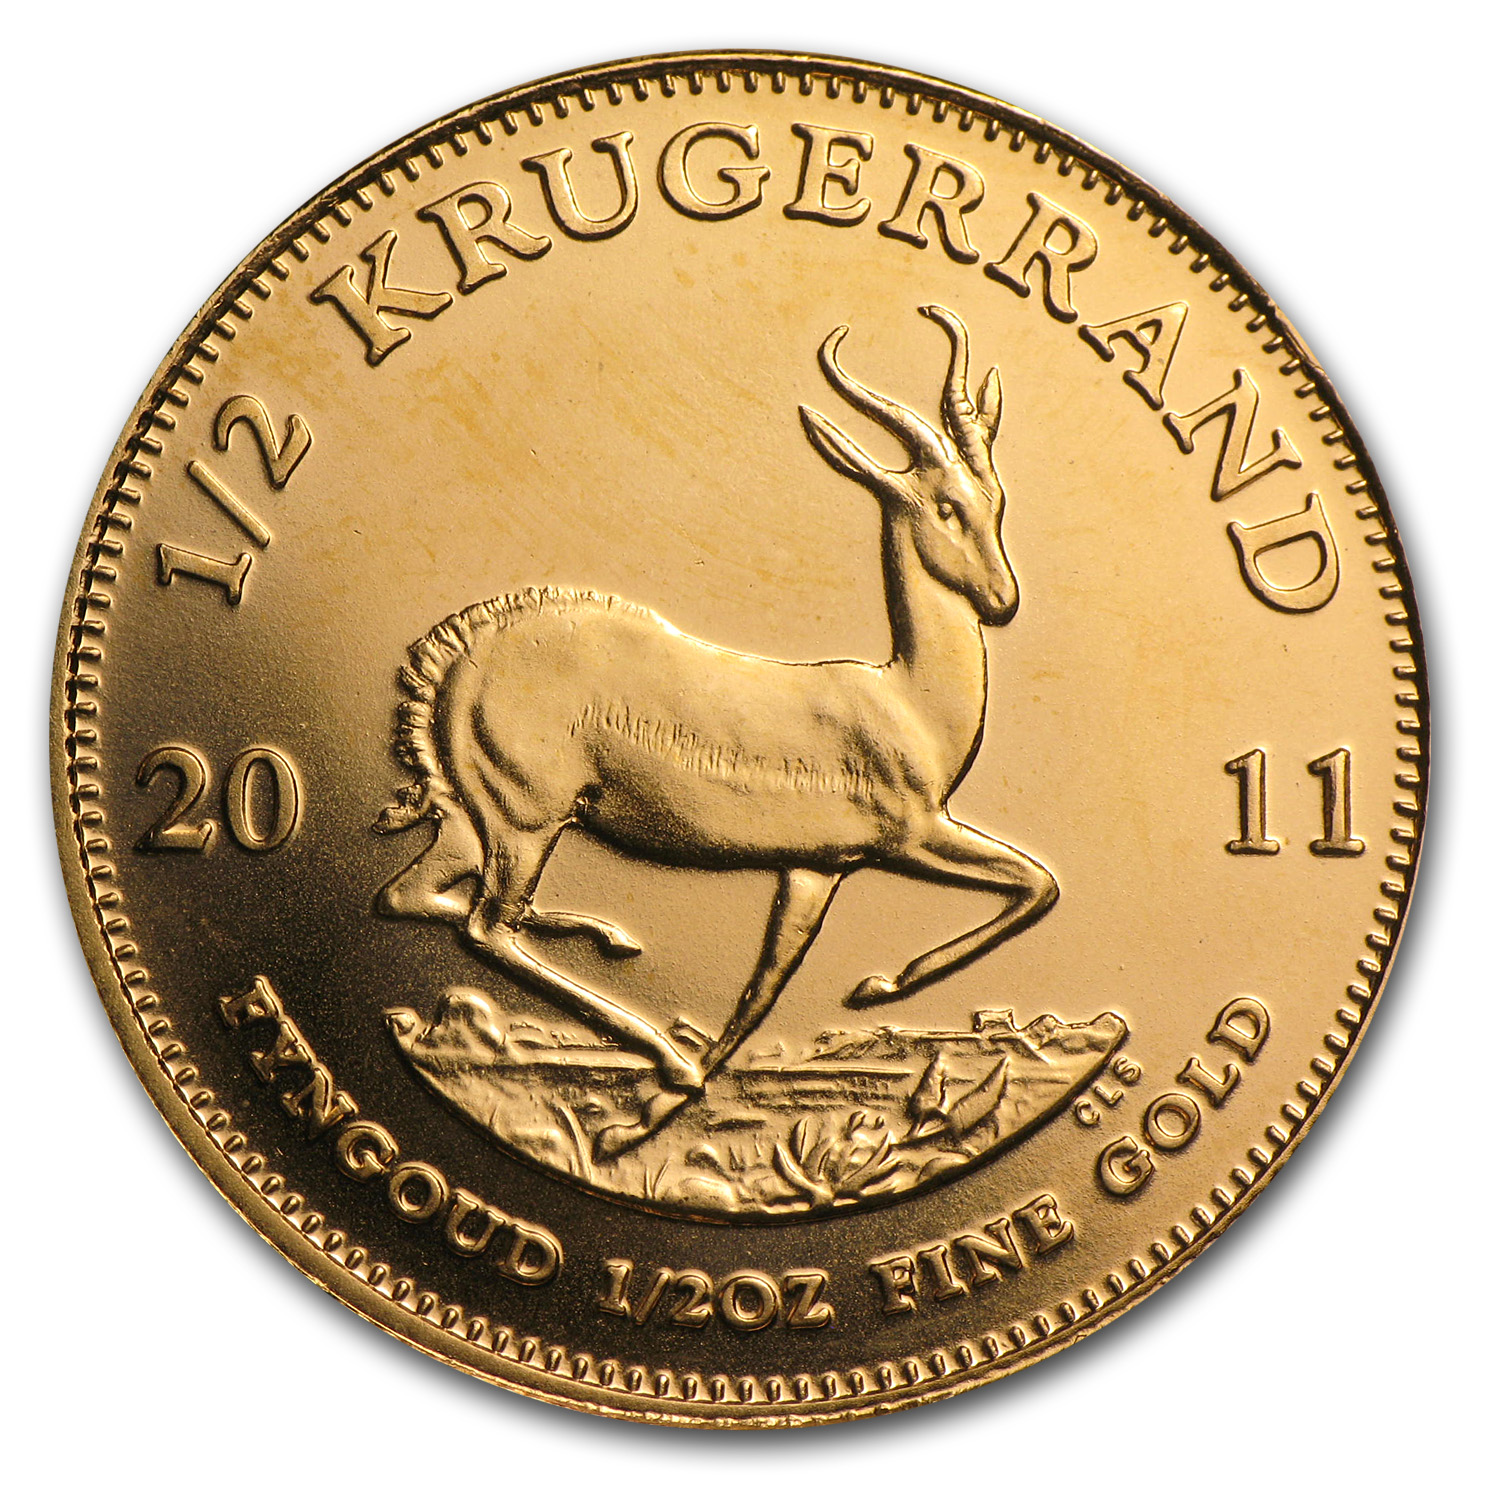 2011 1/2 oz Gold South African Krugerrand